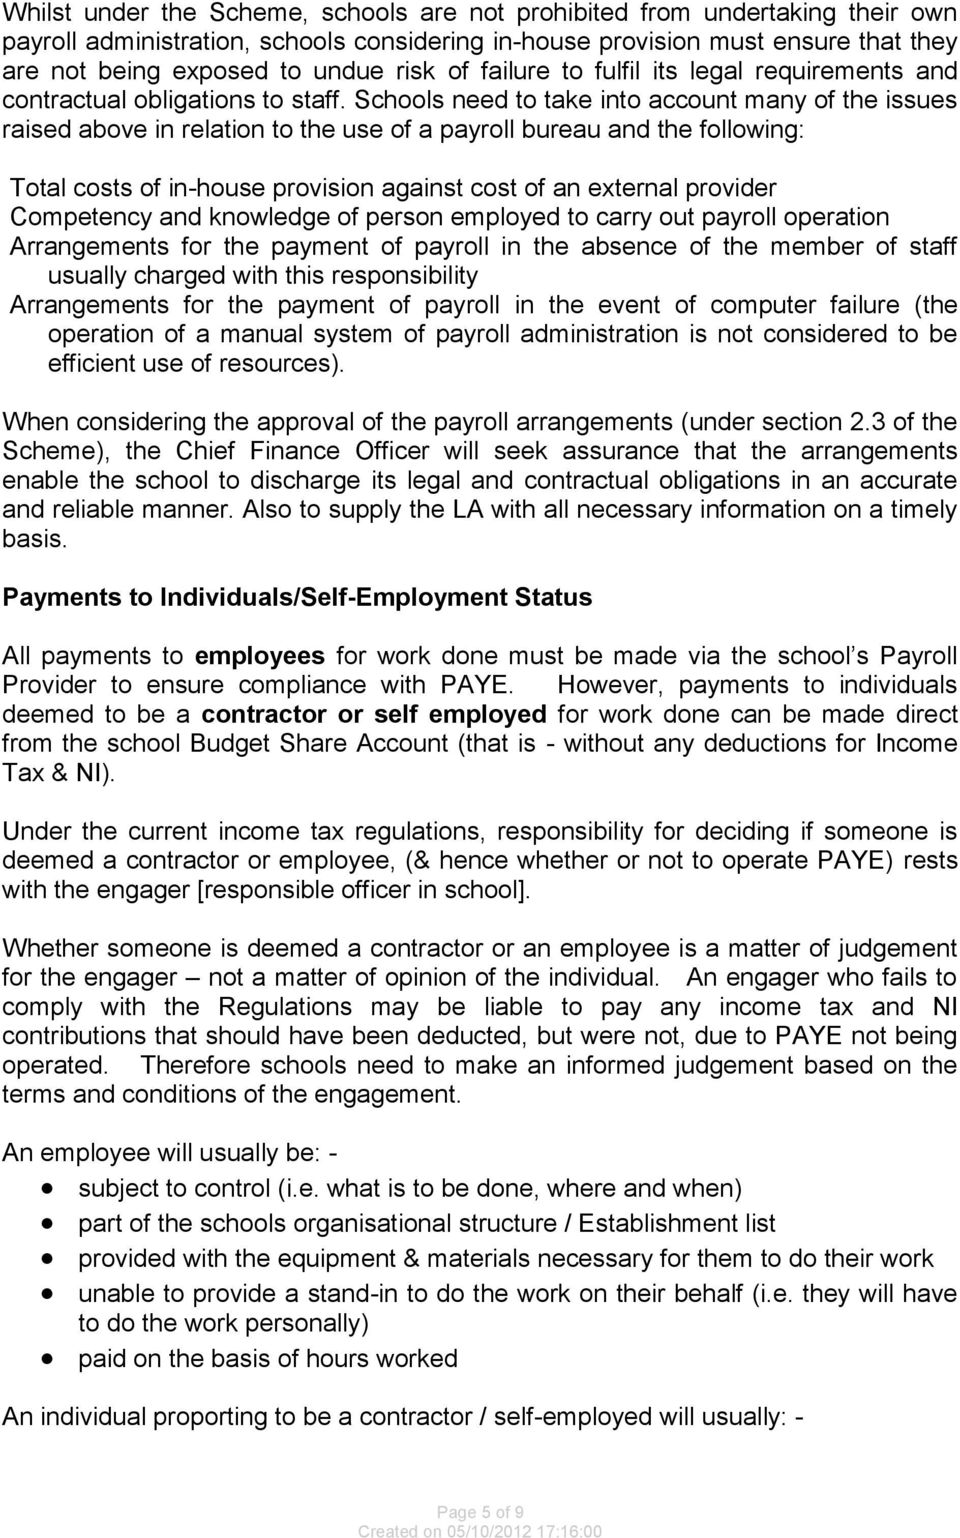 Schools need to take into account many of the issues raised above in relation to the use of a payroll bureau and the following: Total costs of in-house provision against cost of an external provider